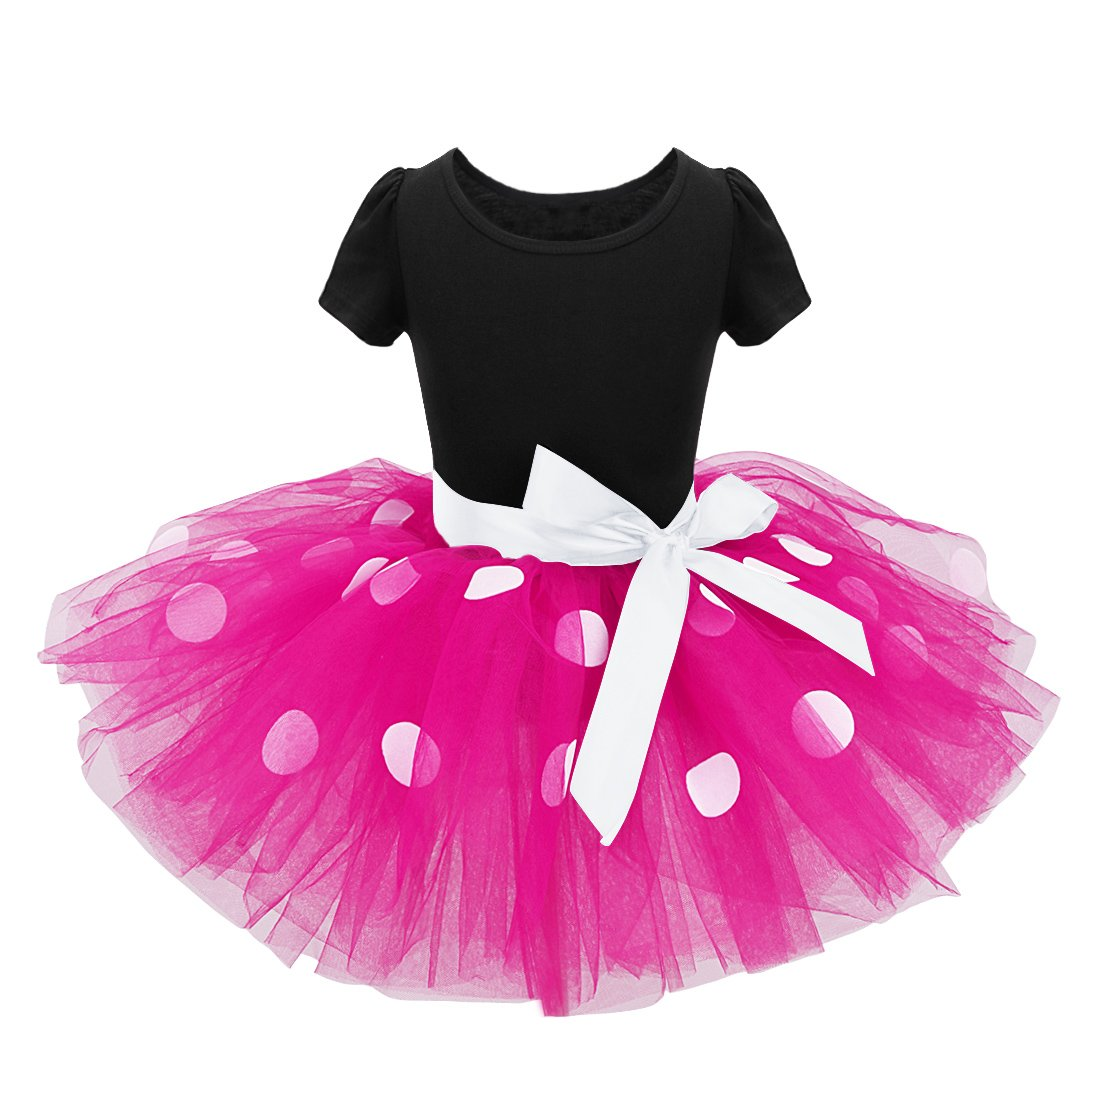 ACSUSS Infant Baby Girls Birthday Party Outfits Cartoon Polk Dots Short Sleeves Romper Tutu Dress Outfits with Headband